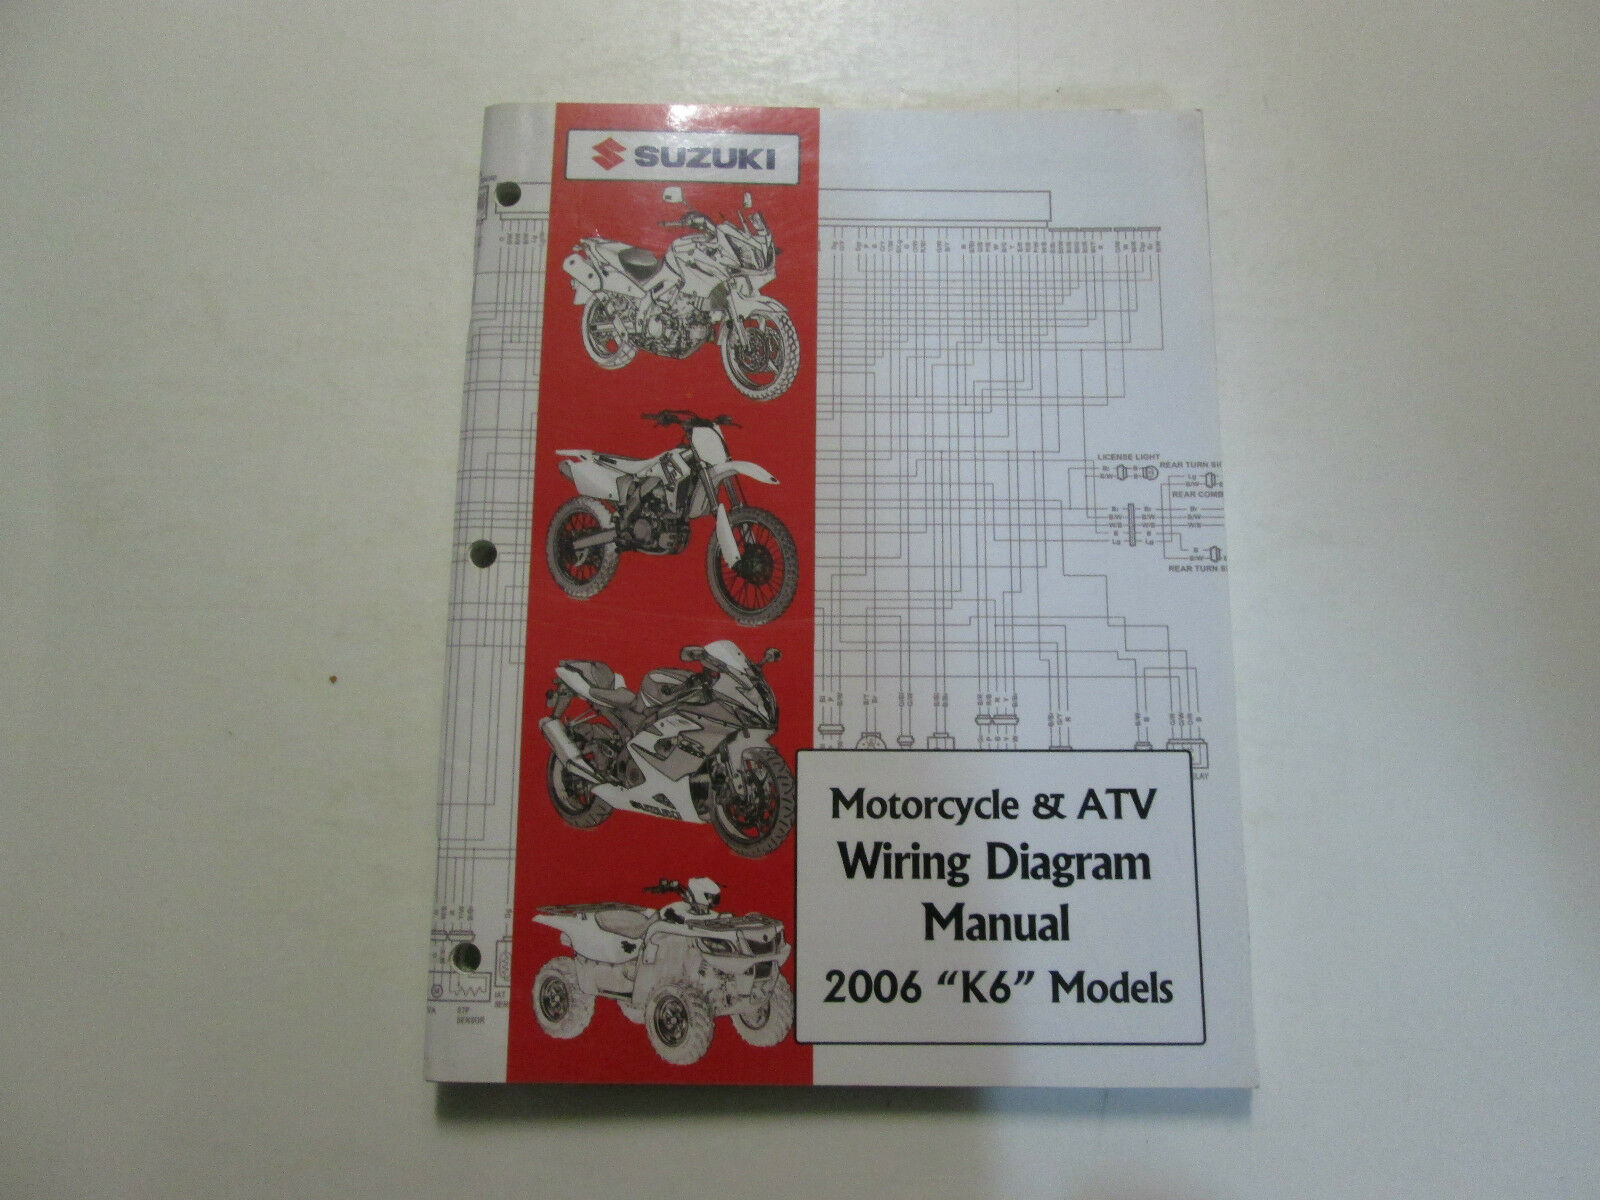 2006 Suzuki Motorcycle Atv Wiring Diagram Manual Models K6 Factory Honda Ct70 Clymer Electrical 1 Of 12only 3 Available